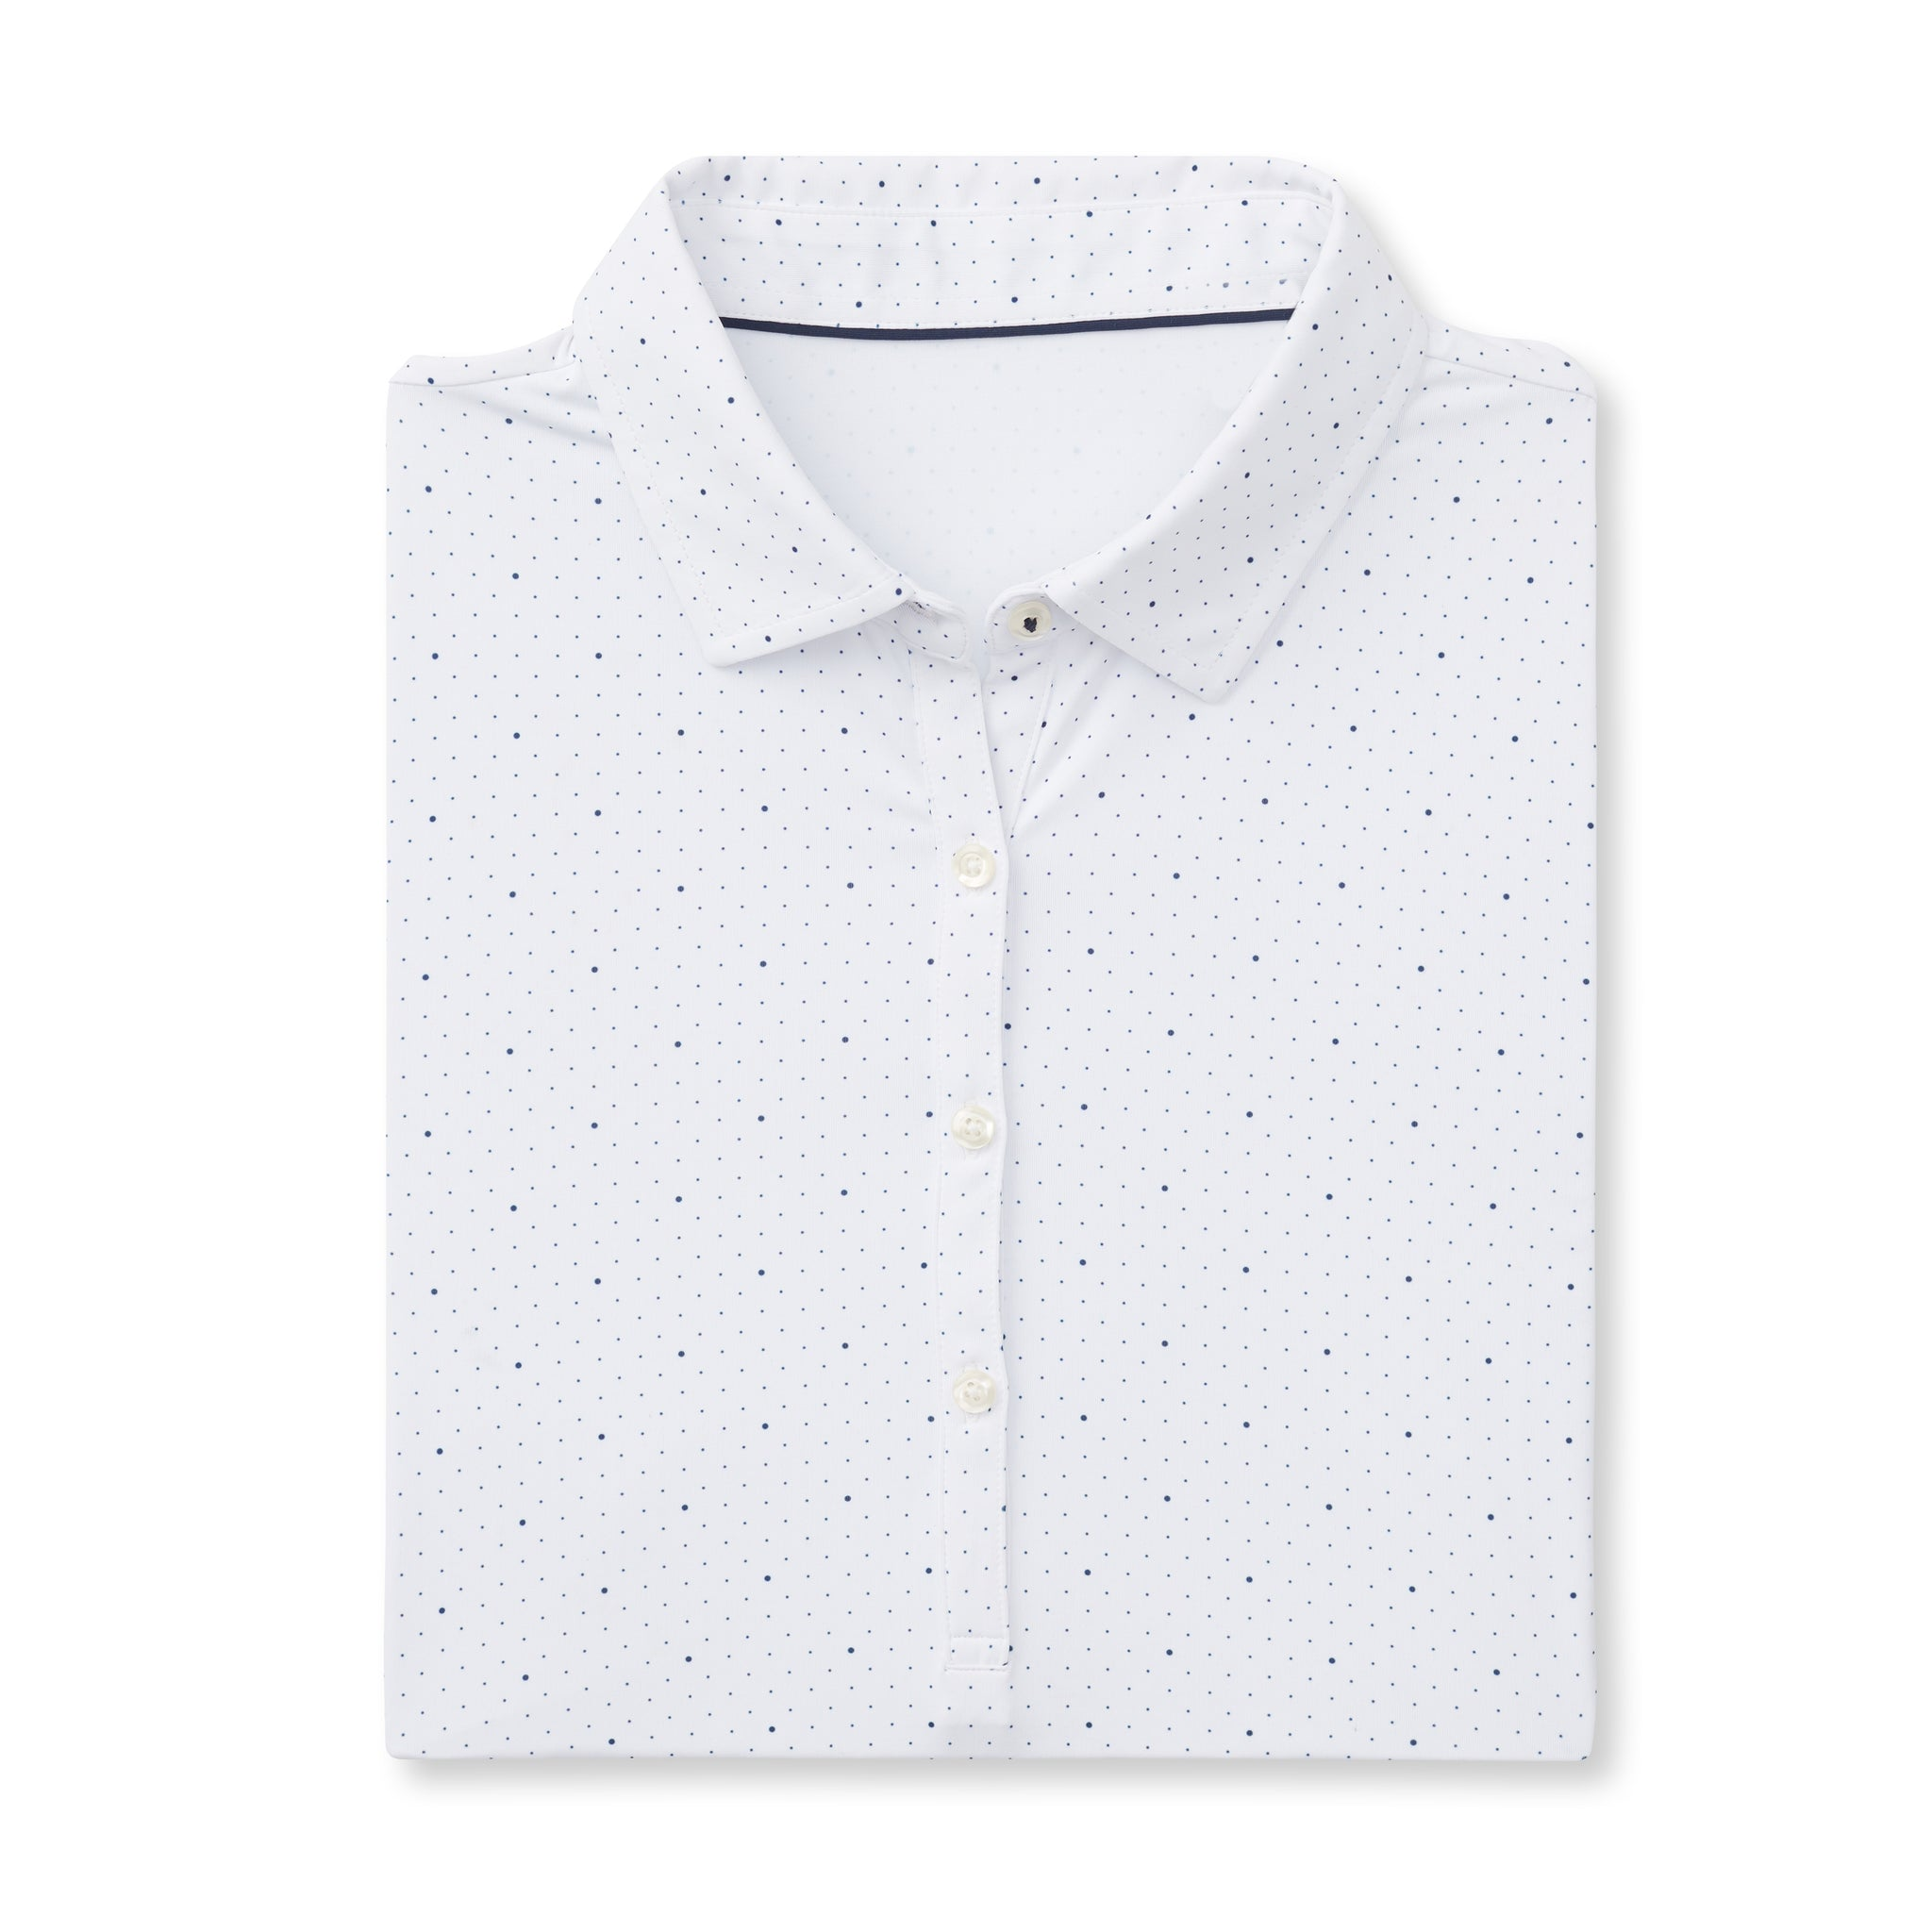 Womens ECOTEC Short Sleeve Dual Dot Polo - White/Navy IS76803W